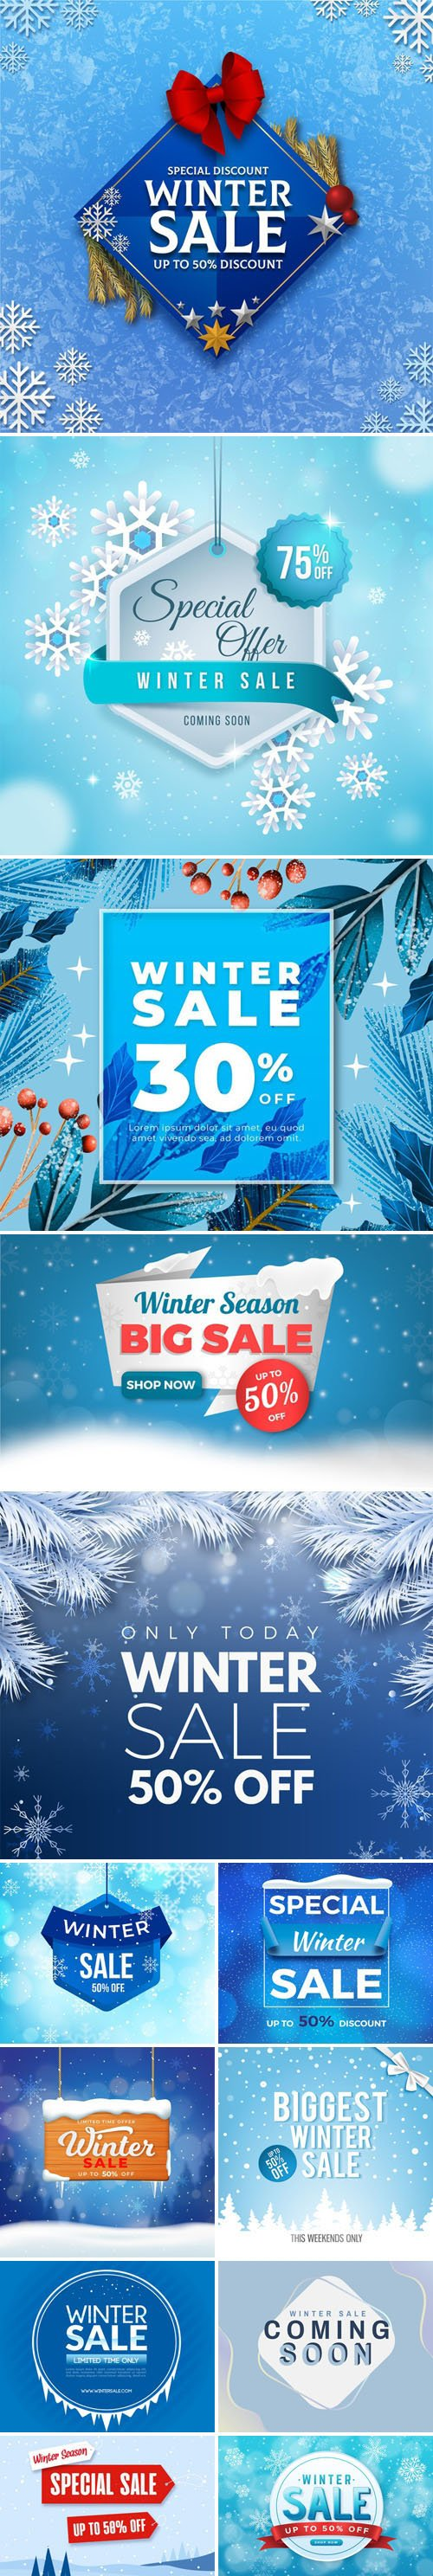 13 Winter Sales Templates Collection in Vector